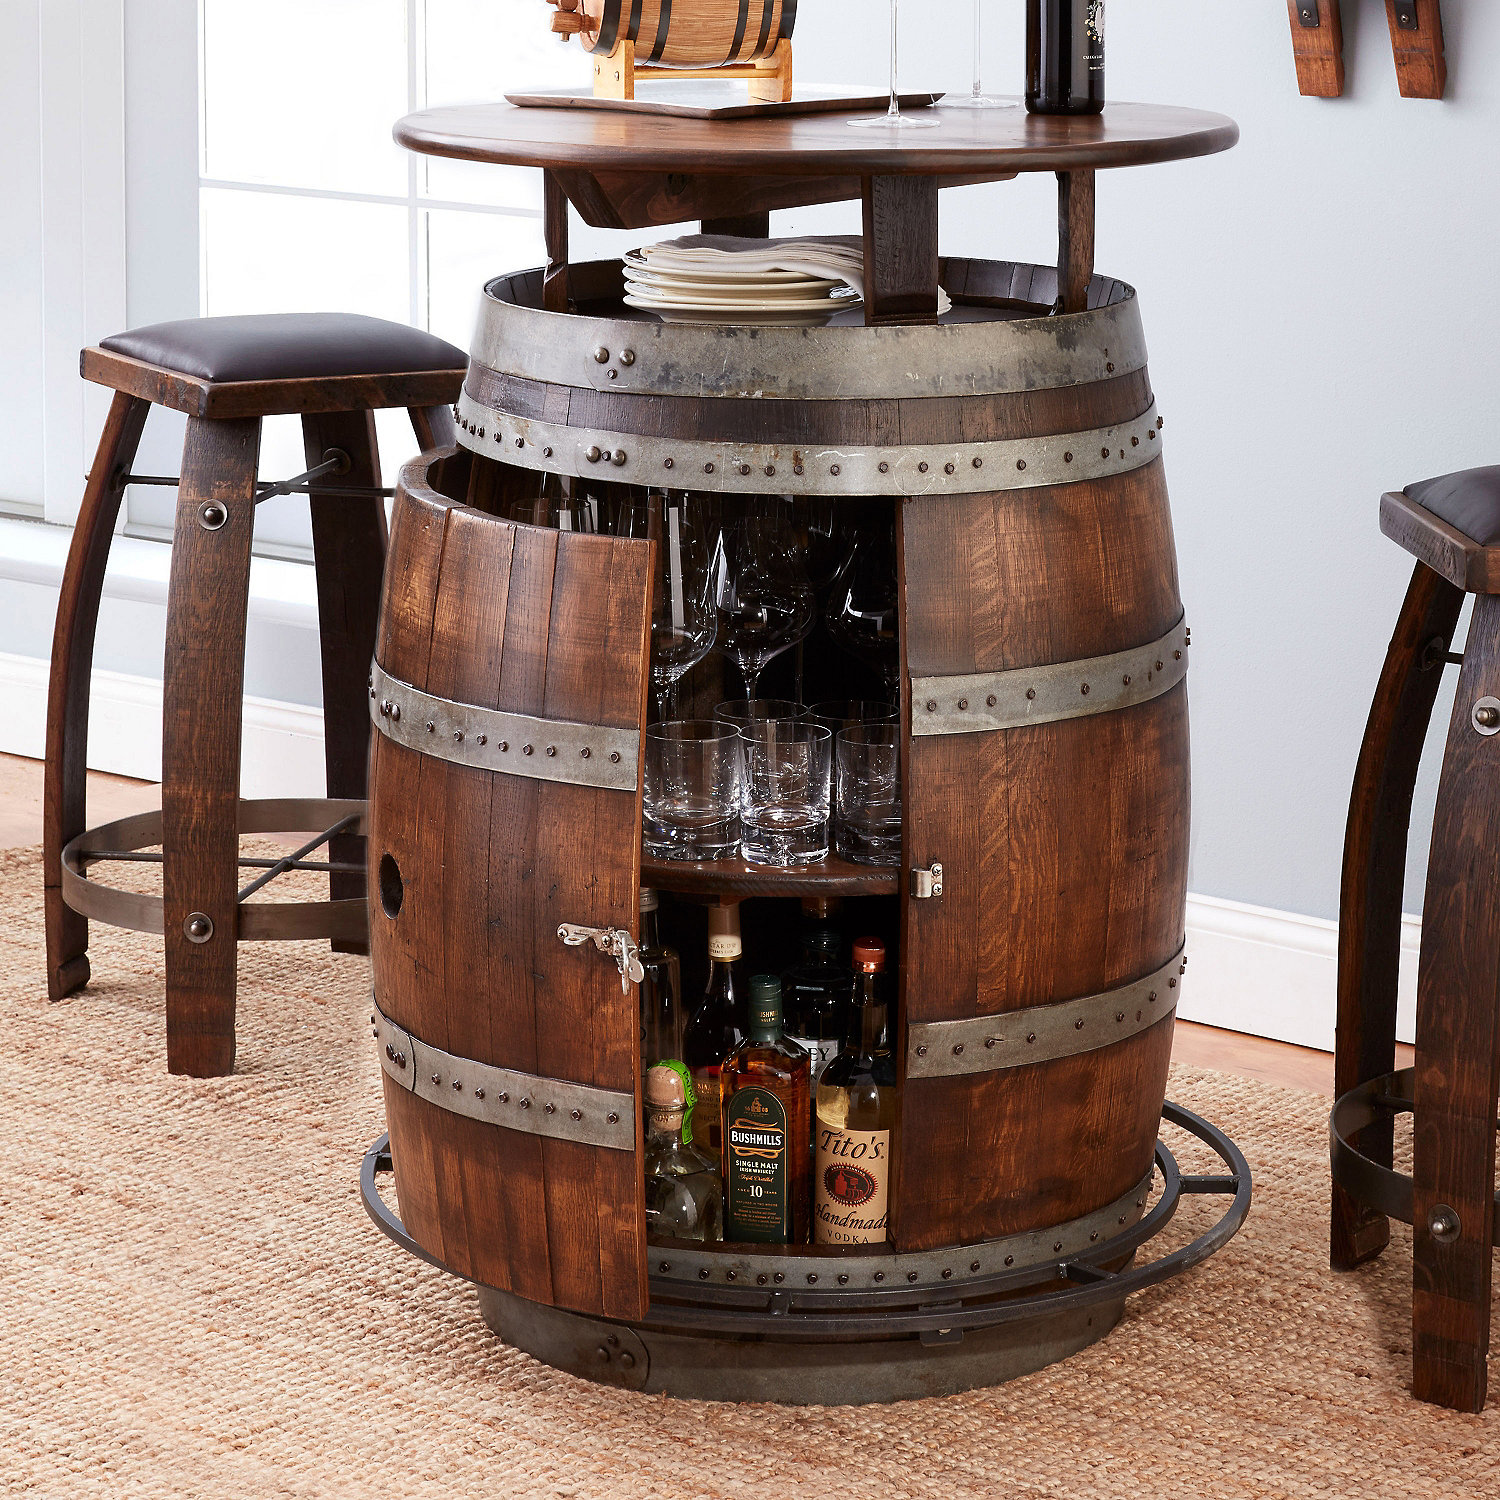 Why You Should Buy Wine Barrel Furniture